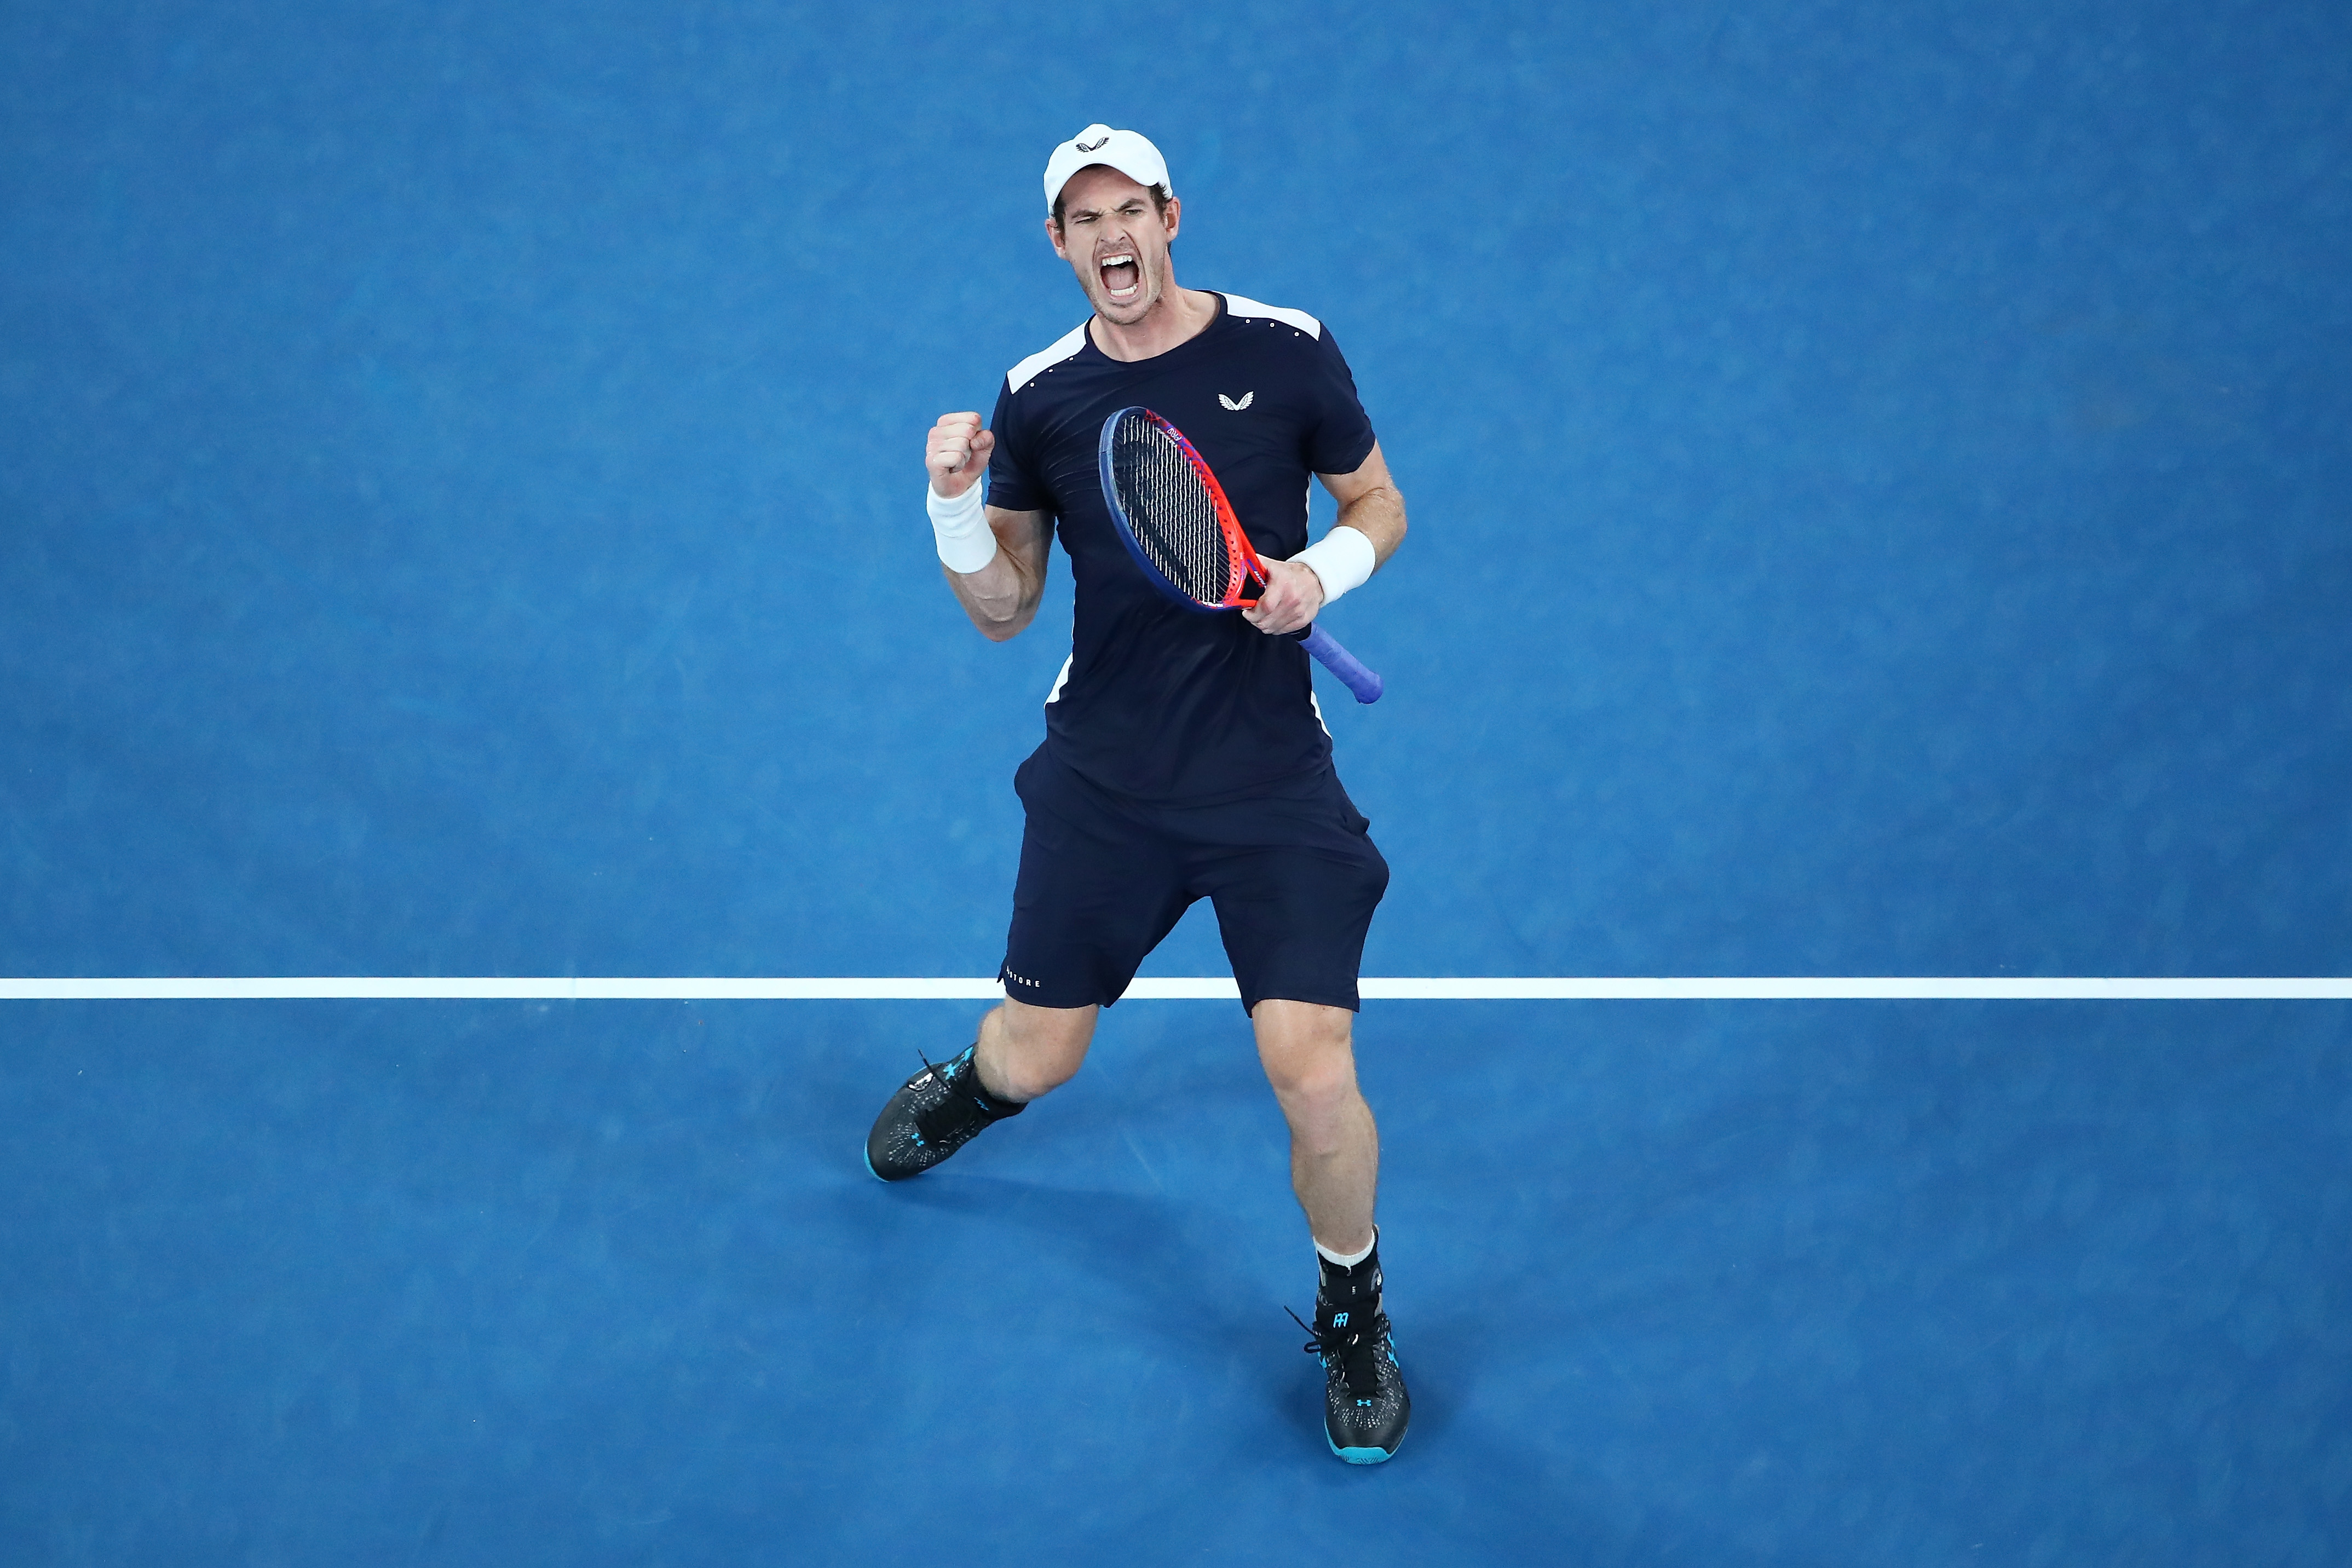 The crowd are on their feet and Murray's fist is in the air as he takes the third set.